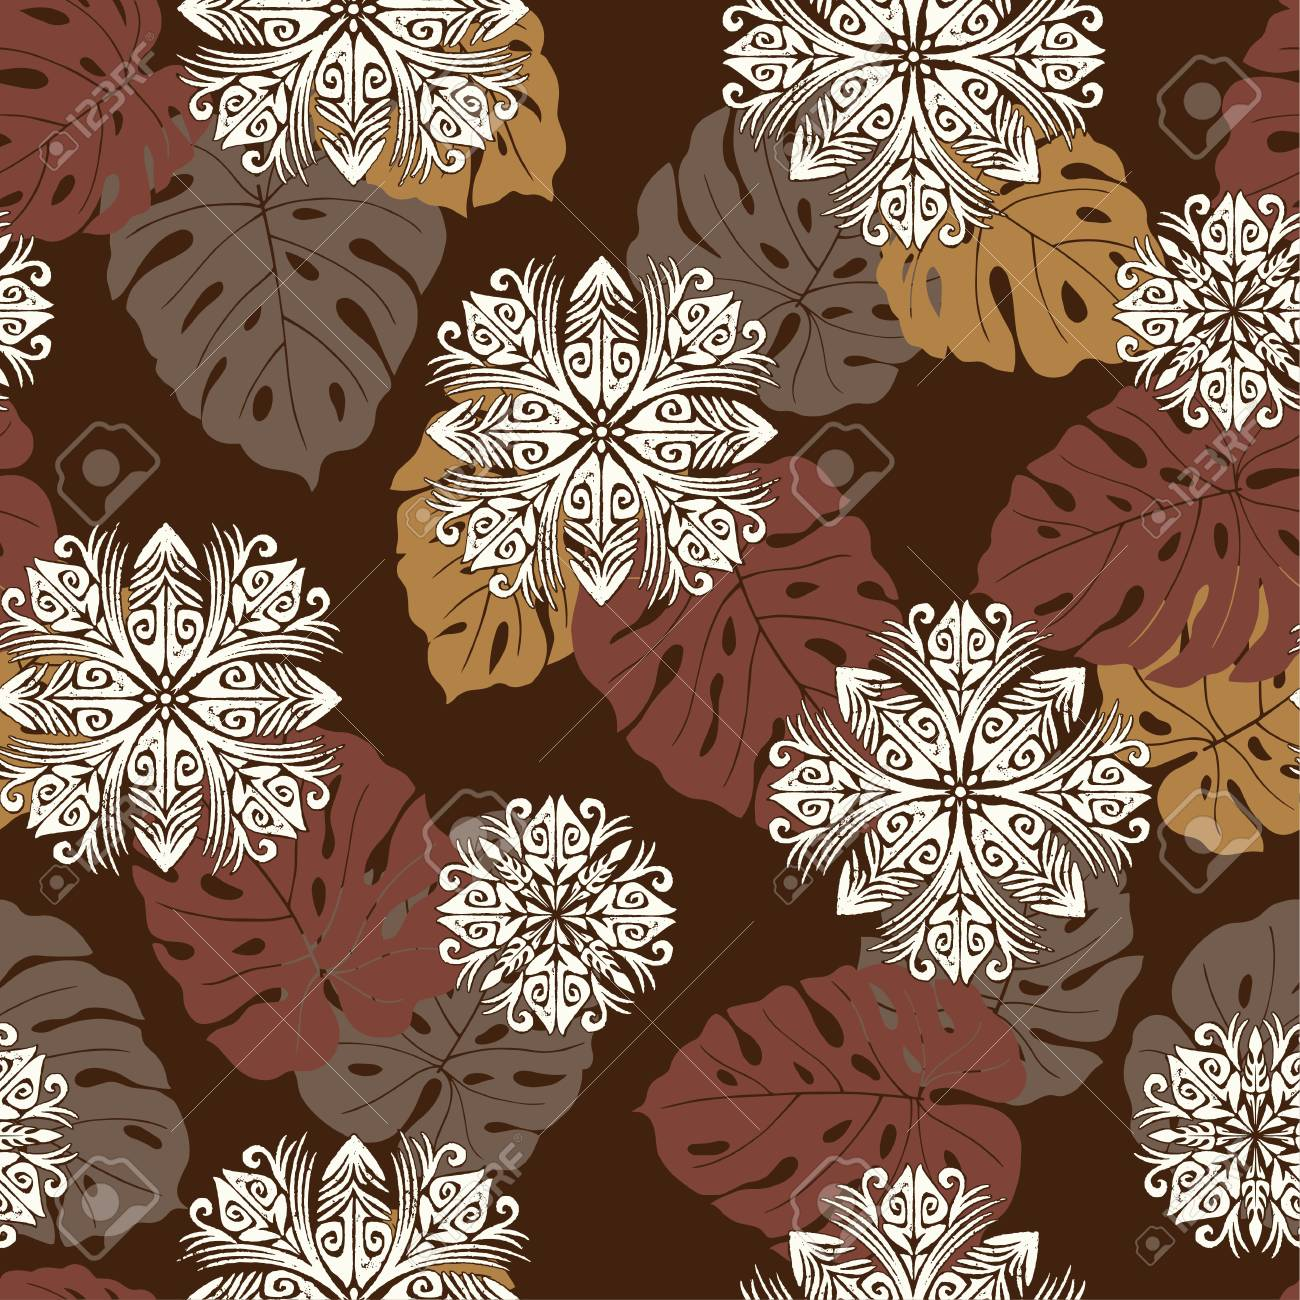 are quora hawaiian qimg what quilting quilt washing it techniques loooooove looks first how so s puckery main c i this technique after the